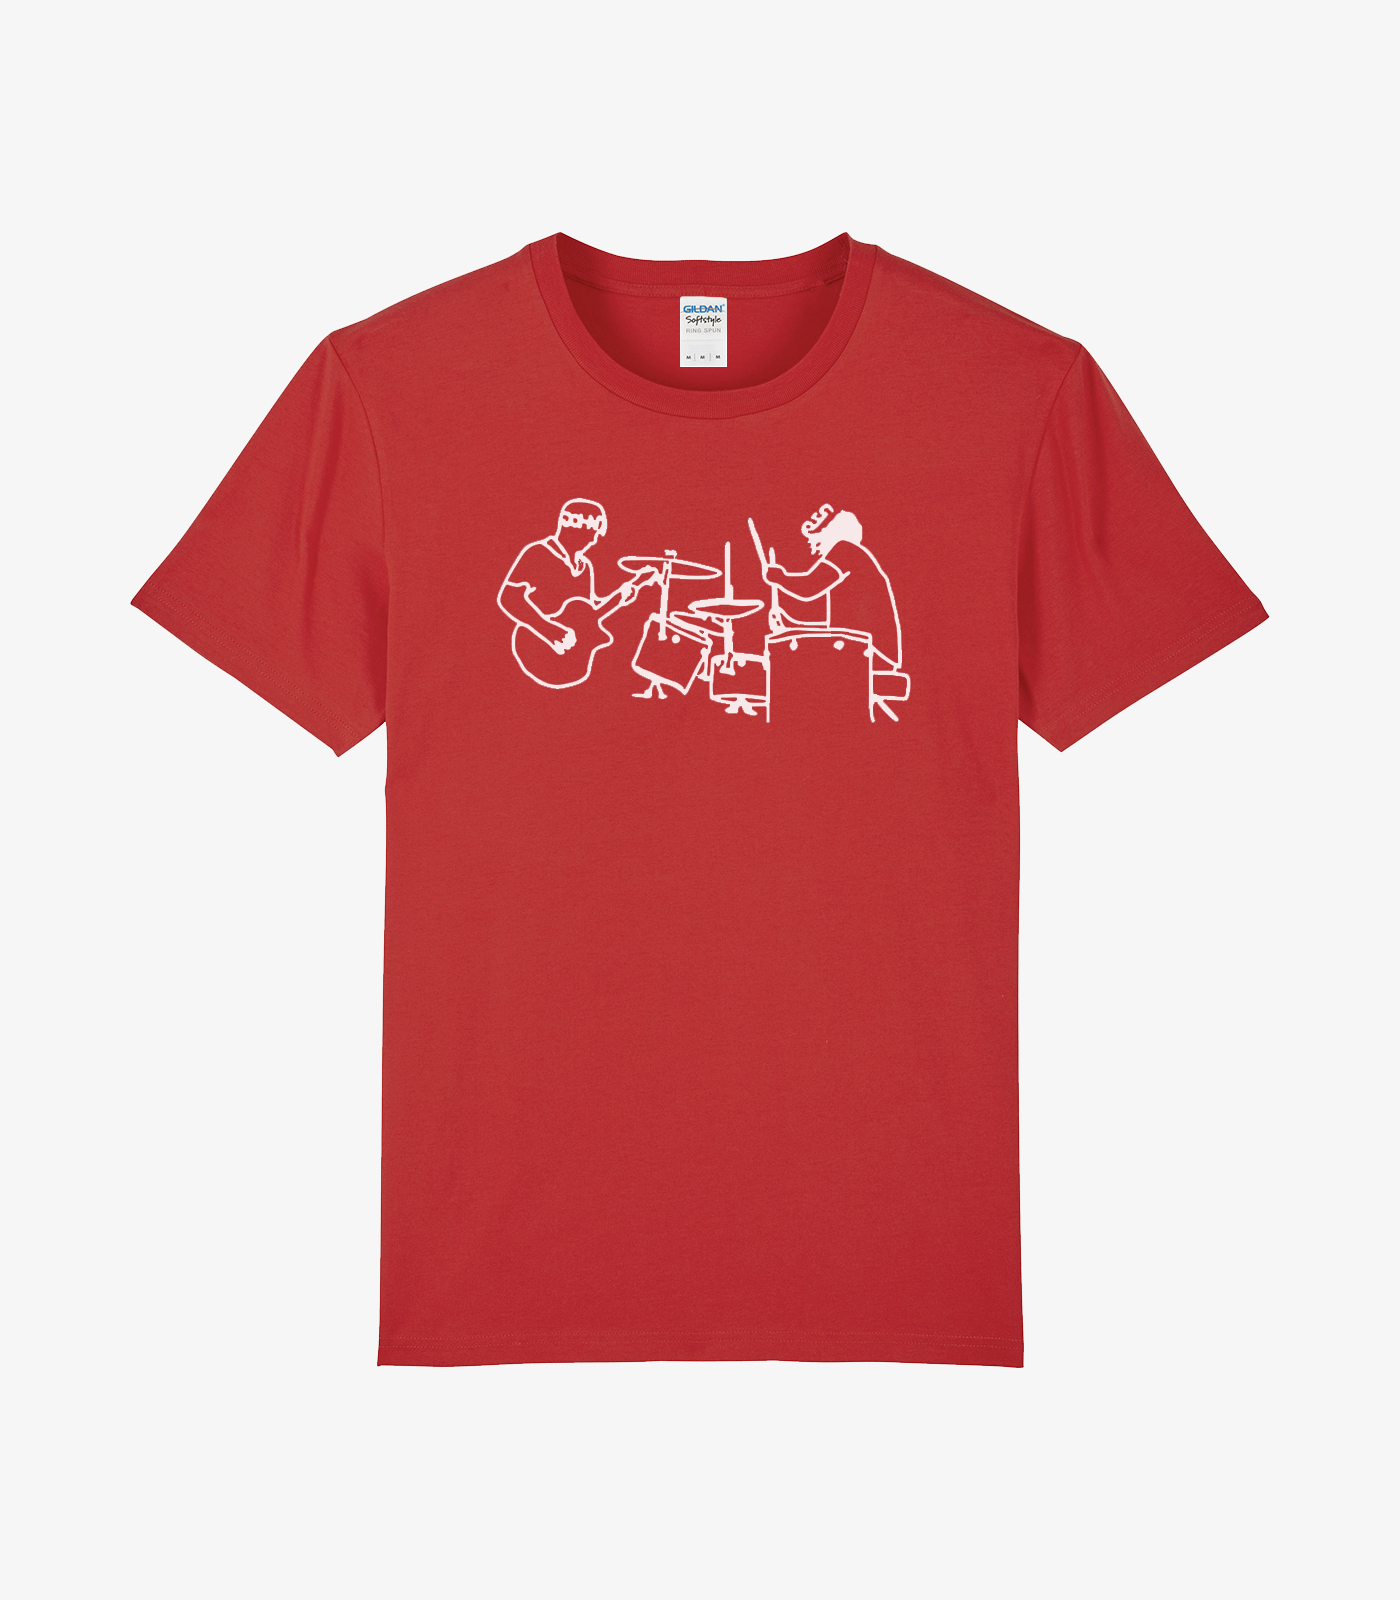 Red In Action T-shirt